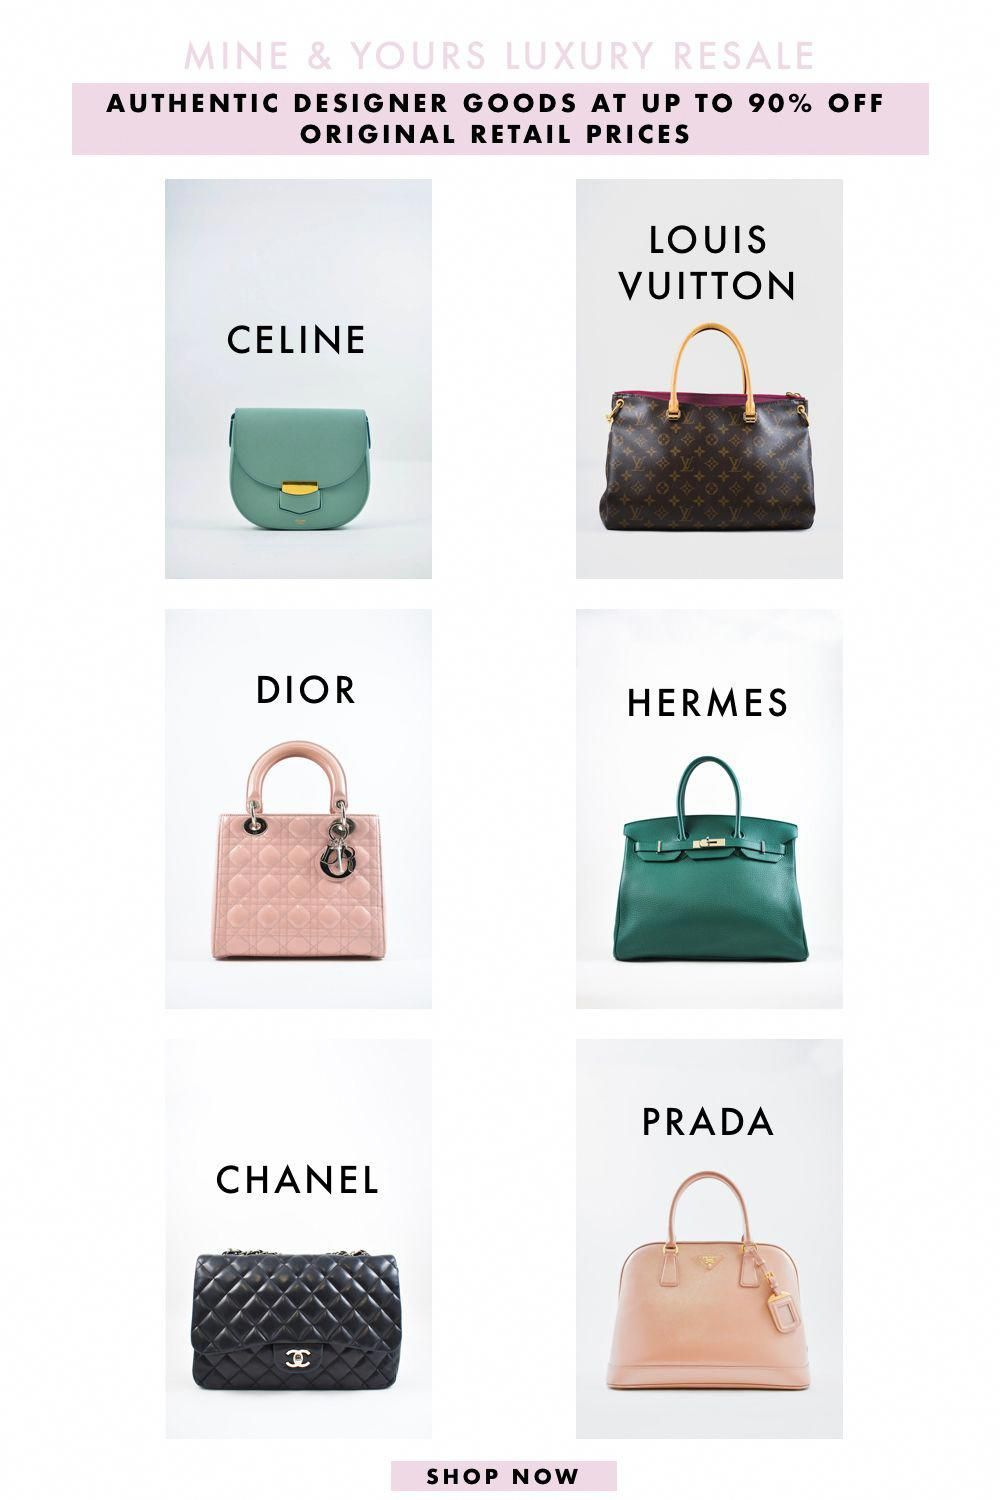 e27b4ec1fa71 Welcome to Mine   Yours! We specialize in pre-loved and consignment  designer handbags at up to 80% off the original retail price from brands  like Chanel